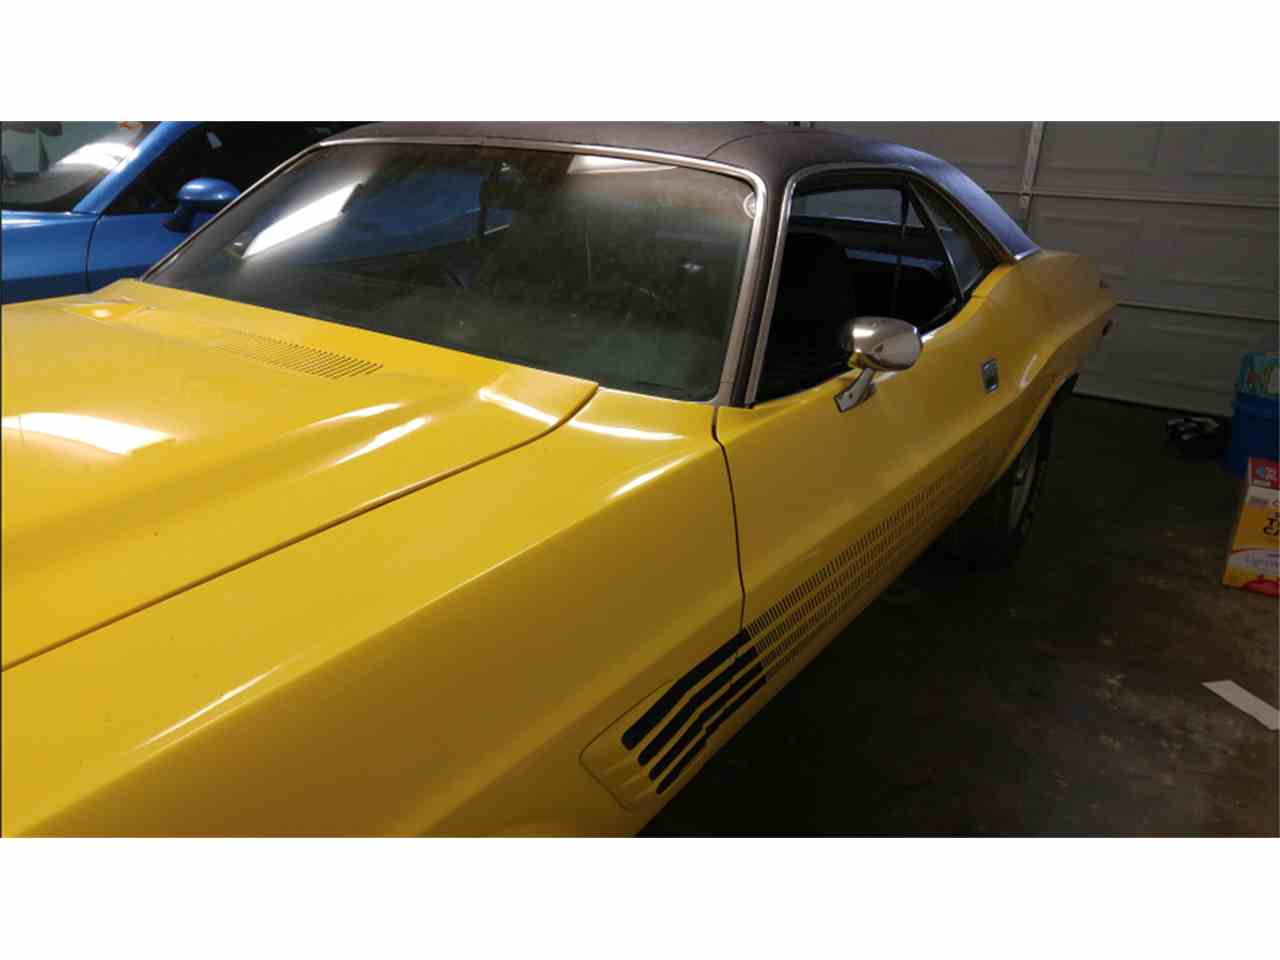 Large Picture of Classic '73 Dodge Challenger located in Alabama - $25,000.00 Offered by a Private Seller - L6WT